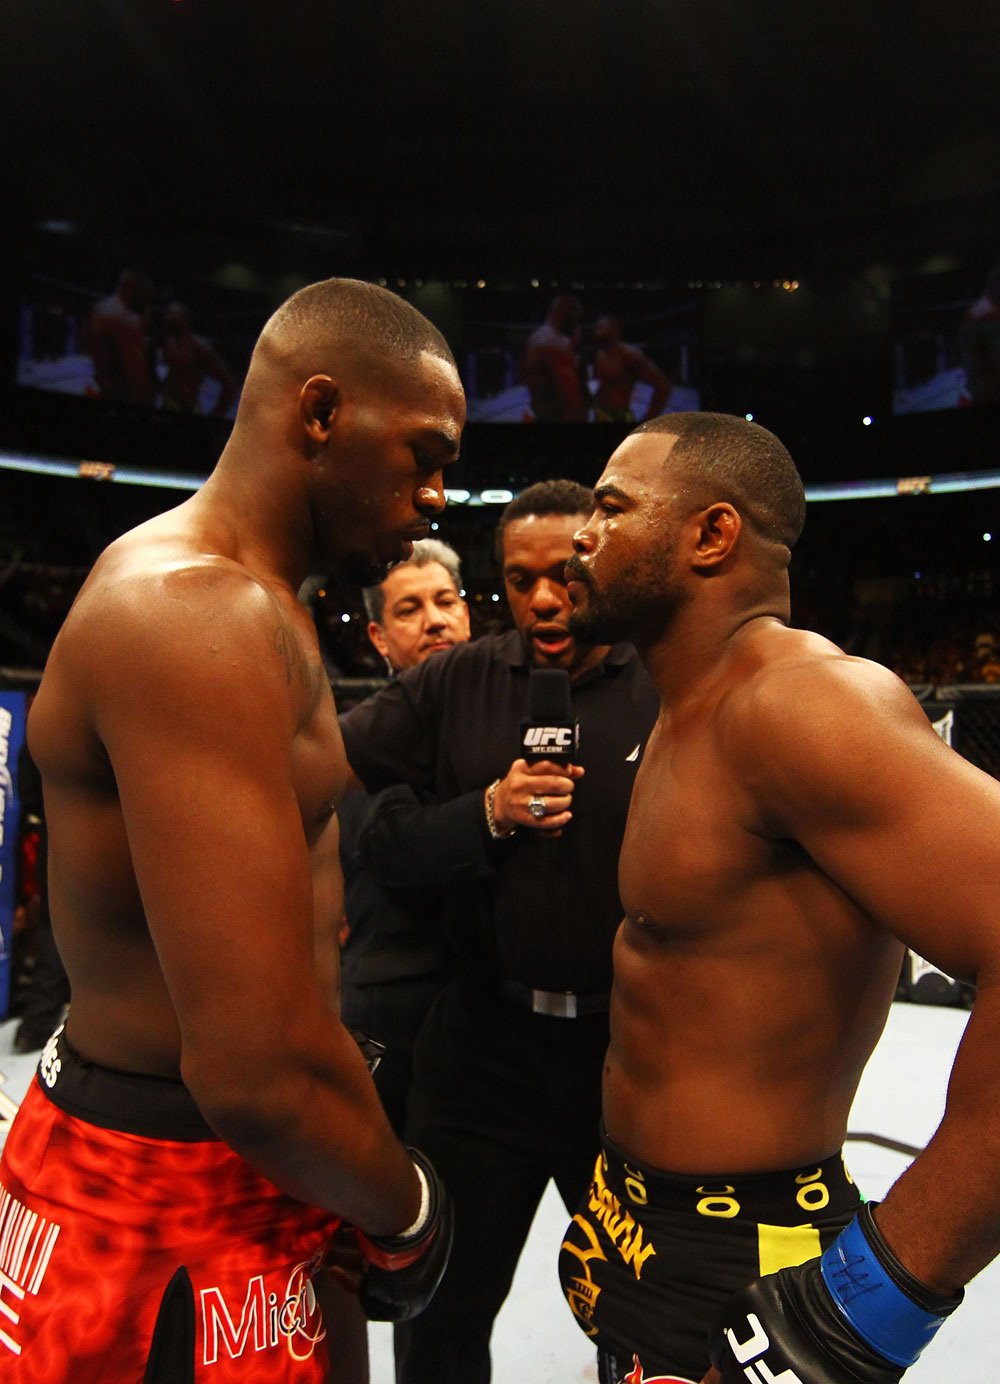 ATLANTA, GA - APRIL 21:  Jon Jones (R) squares off with Rashad Evans prior to their light heavyweight title bout for UFC 145 at Philips Arena on April 21, 2012 in Atlanta, Georgia.  (Photo by Al Bello/Zuffa LLC/Zuffa LLC via Getty Images)